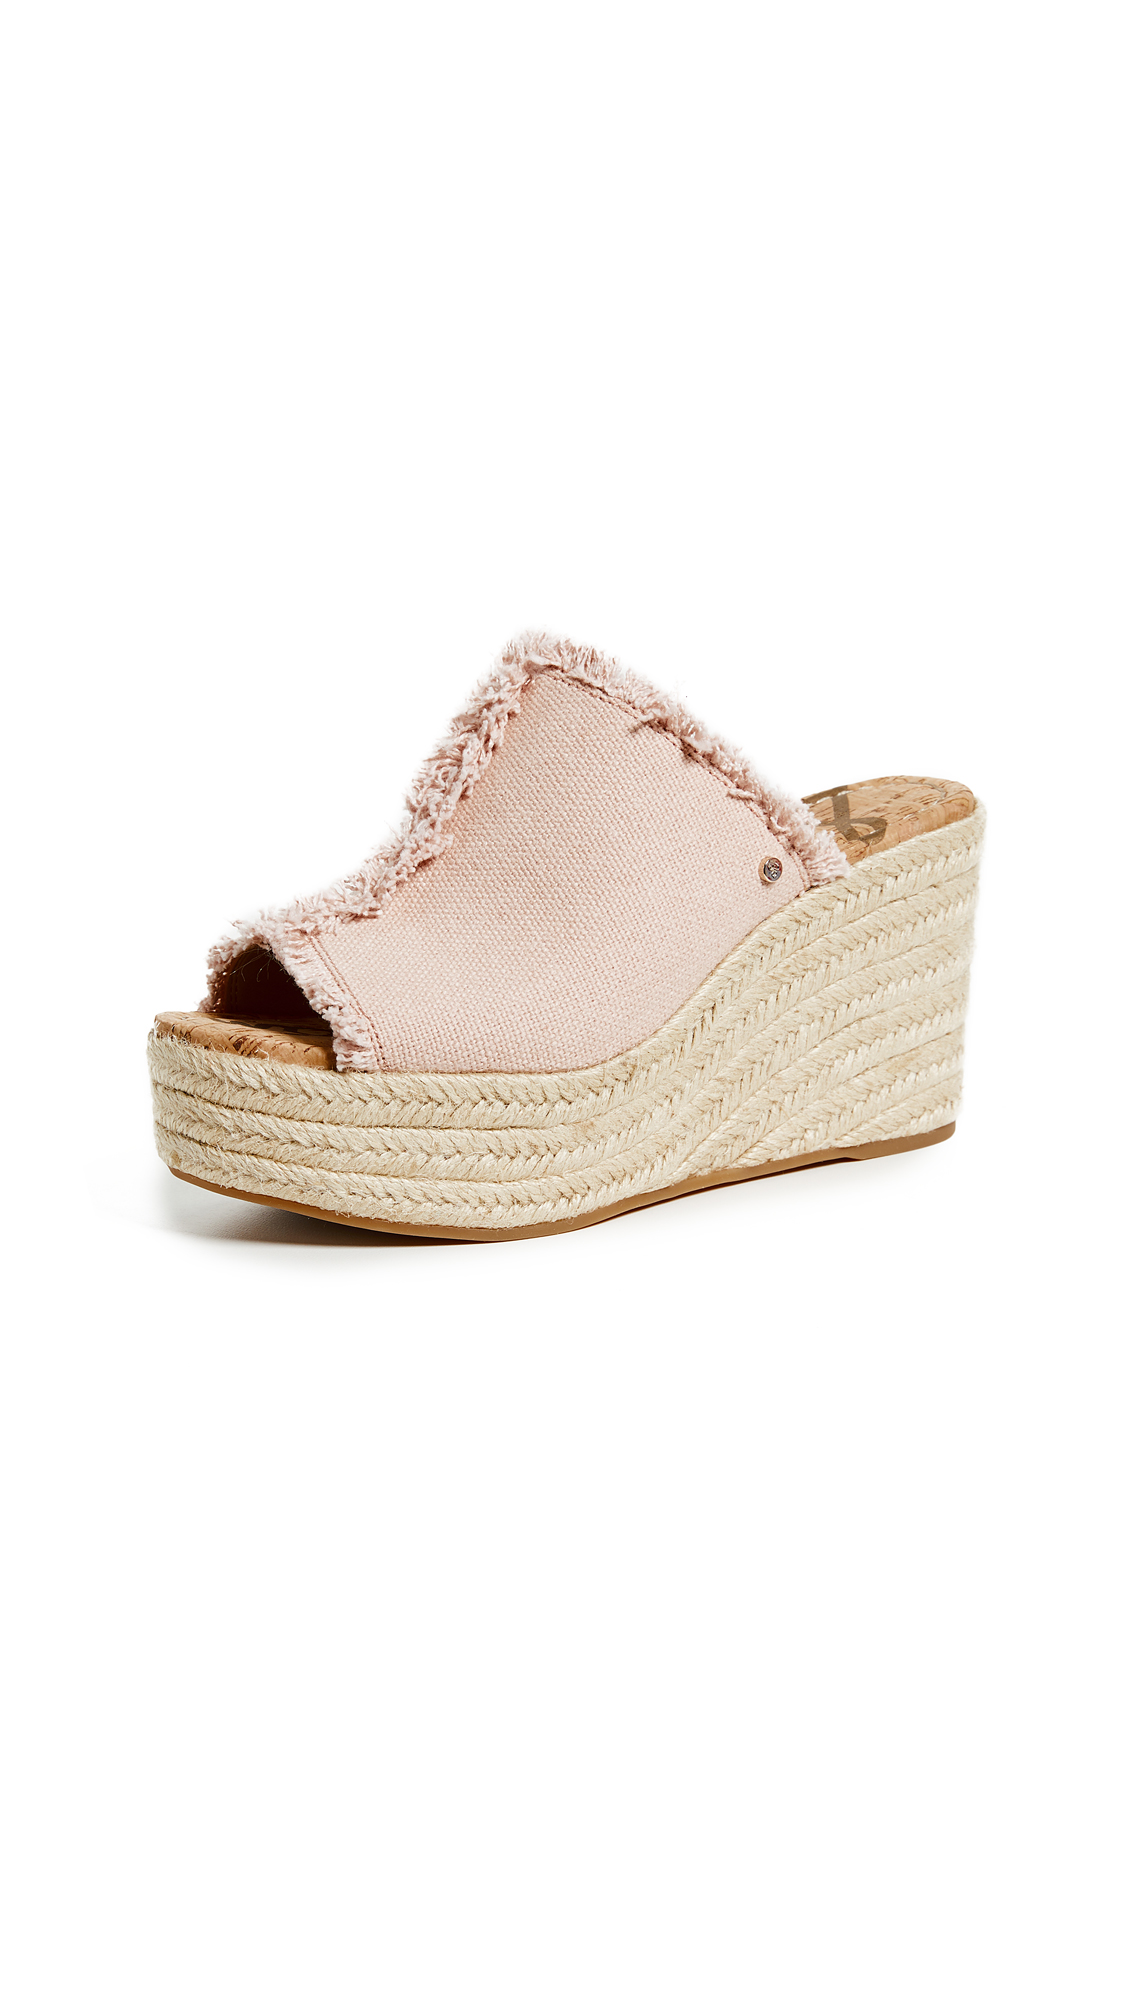 WOMEN'S DINA FRINGED ESPADRILLE WEDGE SLIDE SANDALS